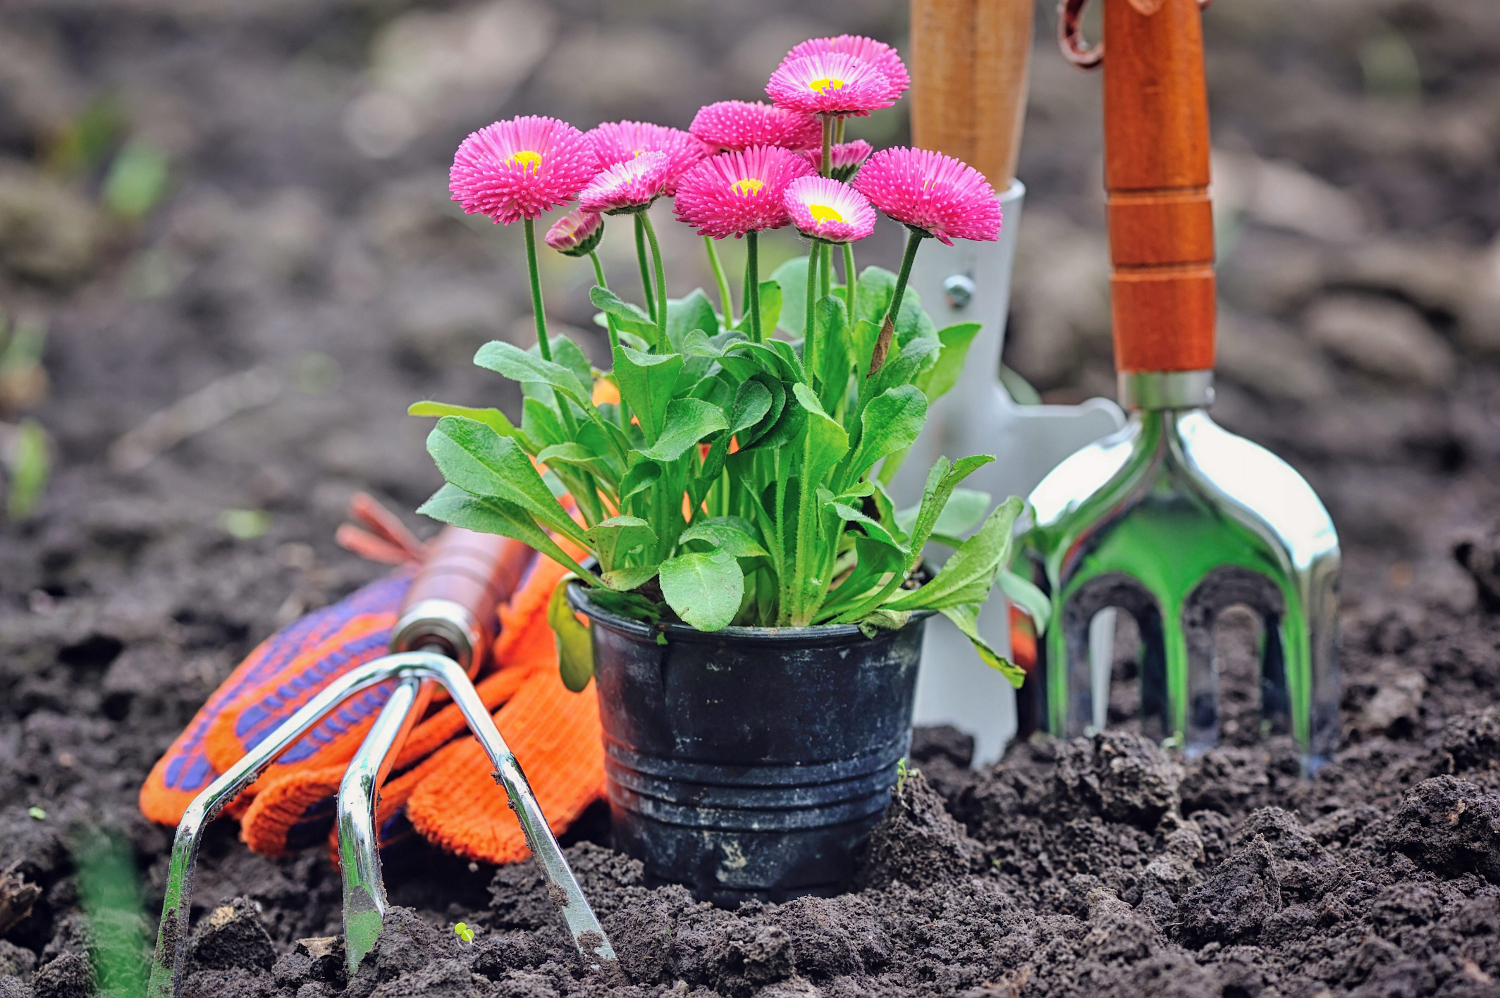 Beautiful marguerite flowers and garden tools